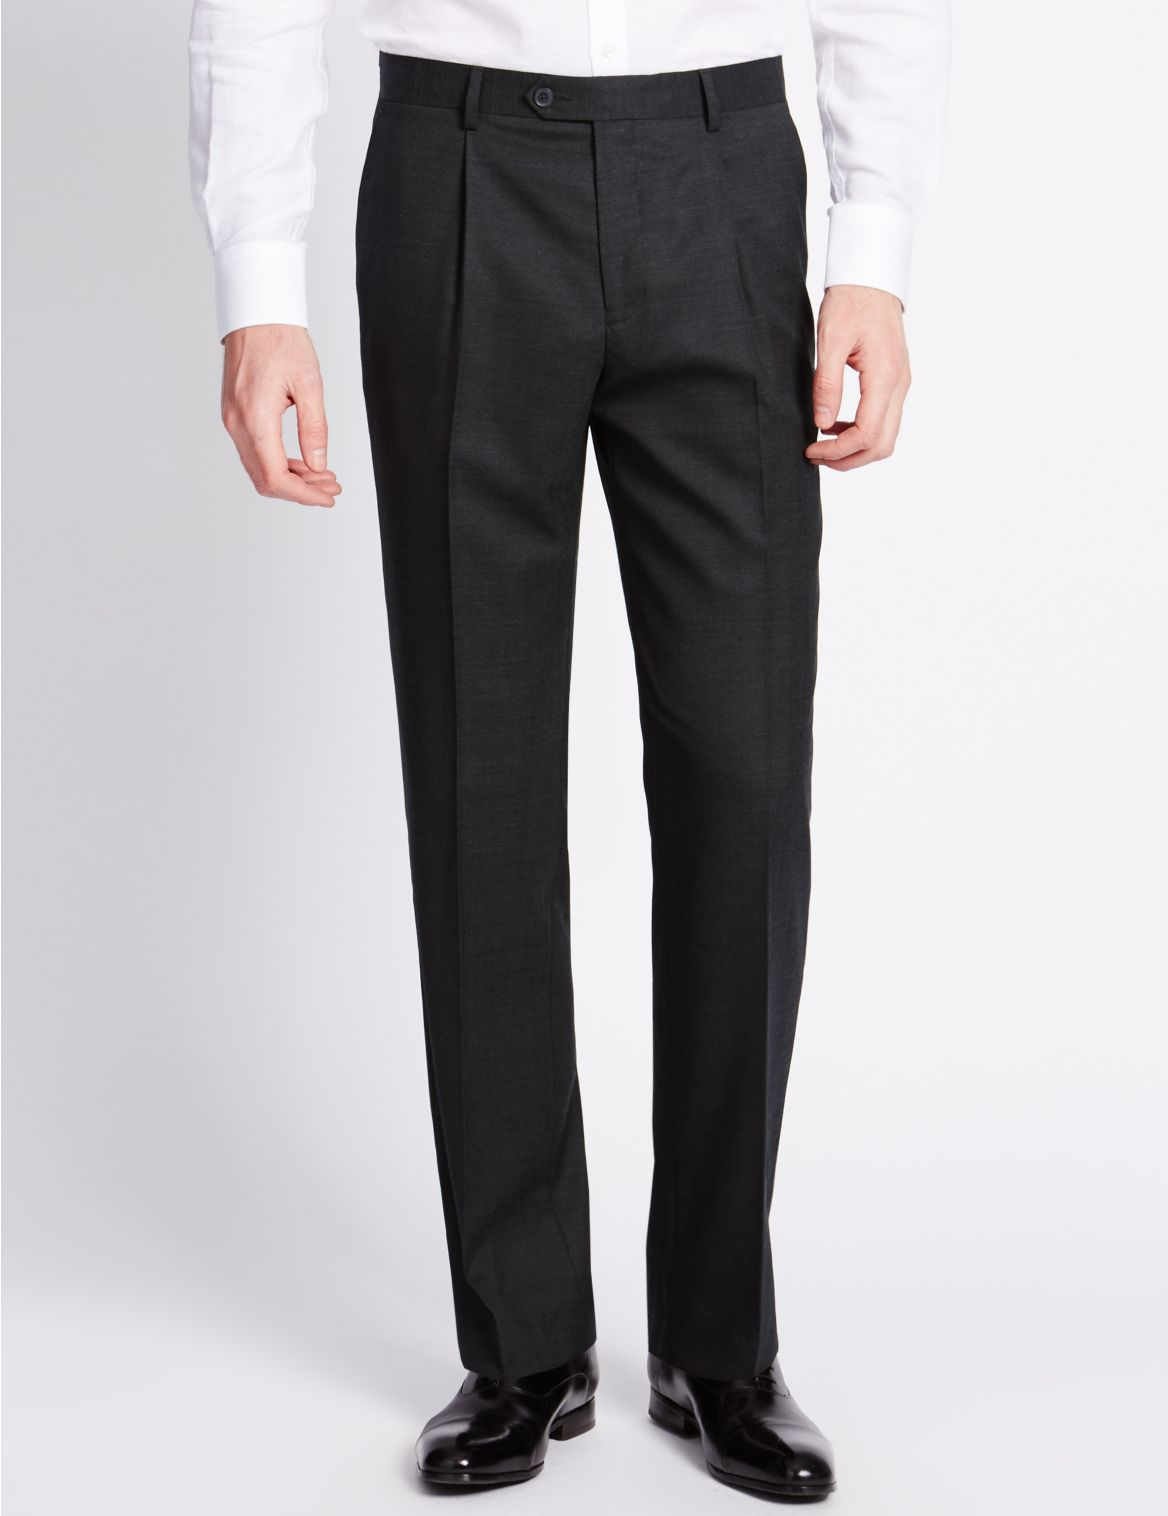 Marks And Spencer Big & Tall - Luxe Broek Van Zuiver Wol